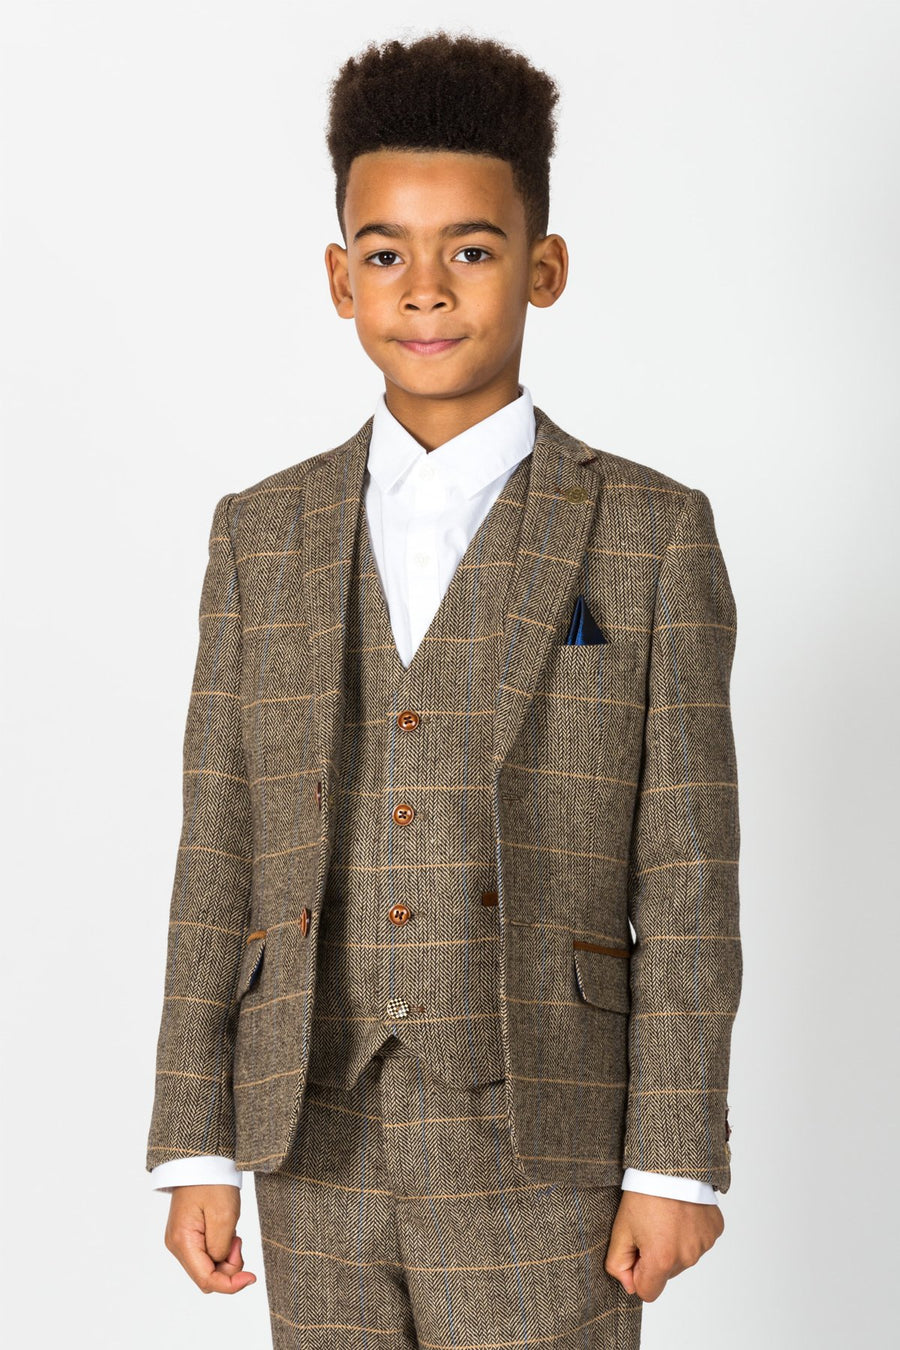 Ted Children's Tan Tonal Check Tweed Three Piece Suit - Wedding Suit Direct